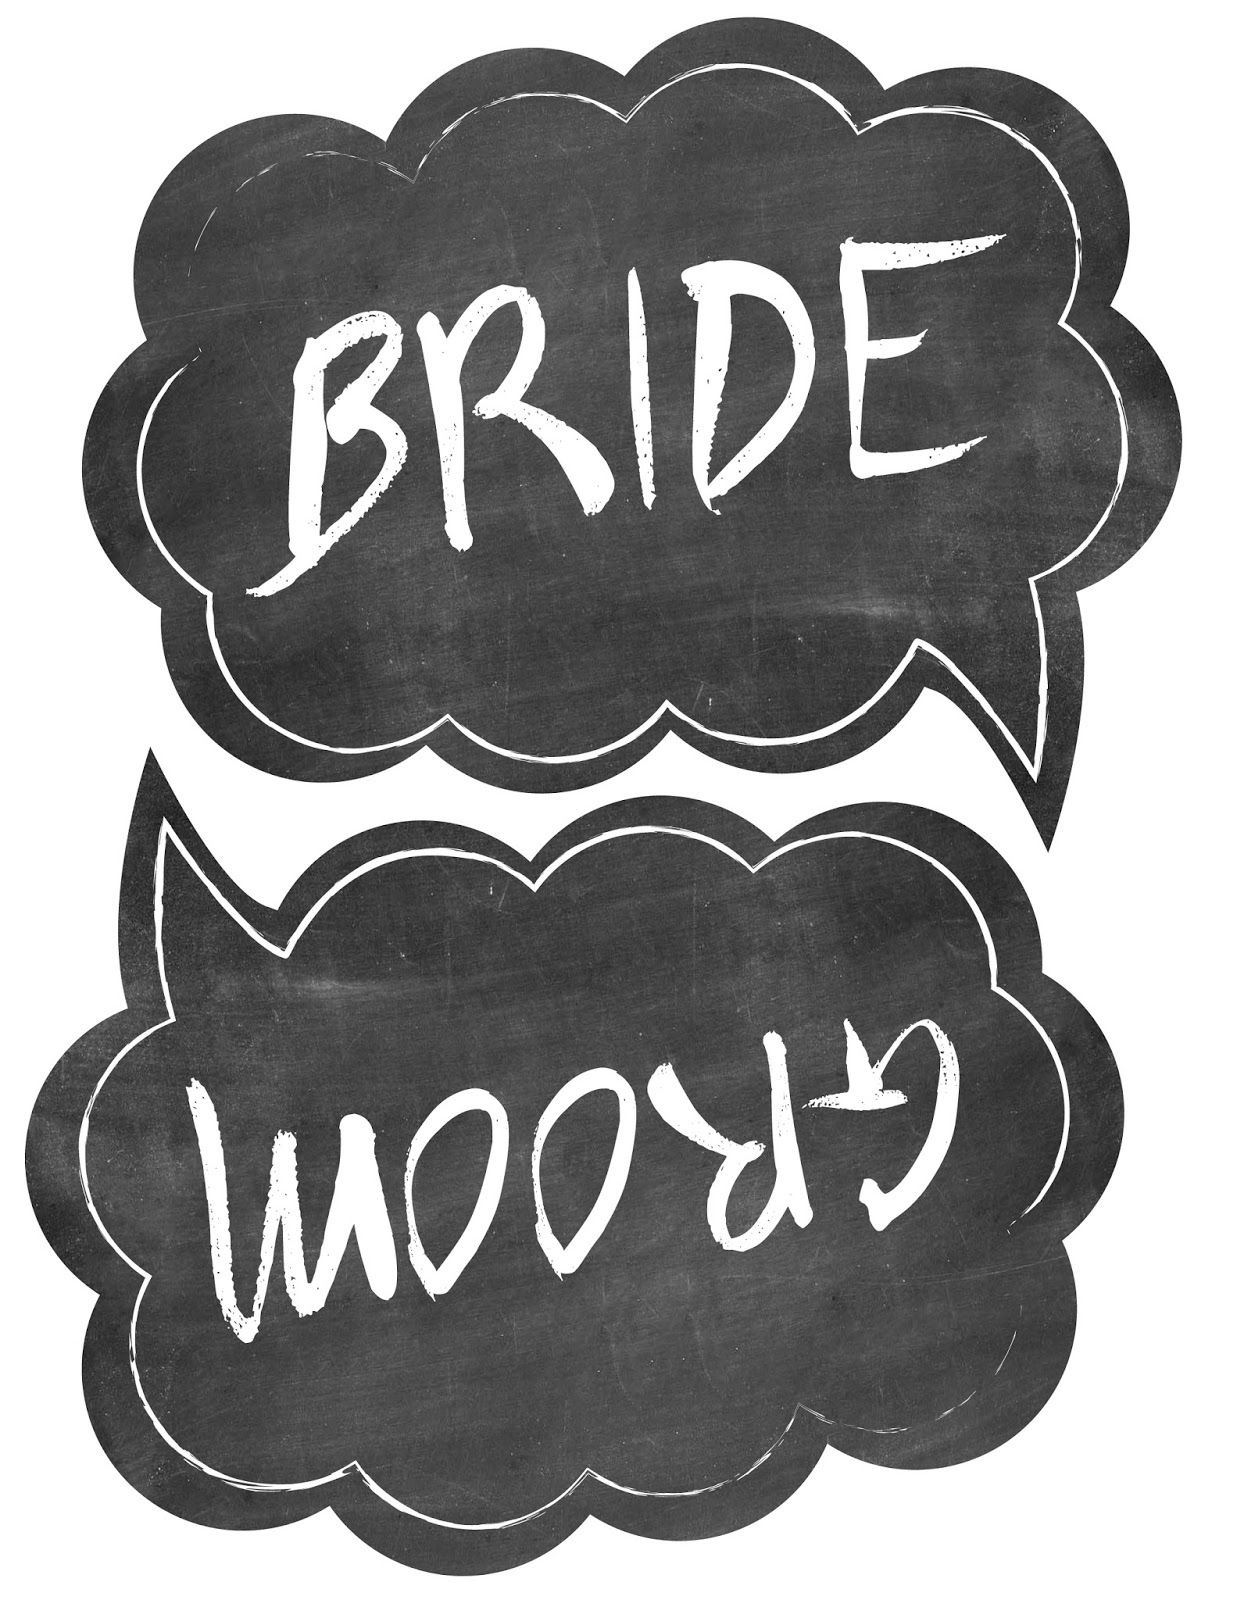 Wedding Photo Booth Props Free Printable Templates | Wedding Photo - Free Printable Wedding Photo Booth Props